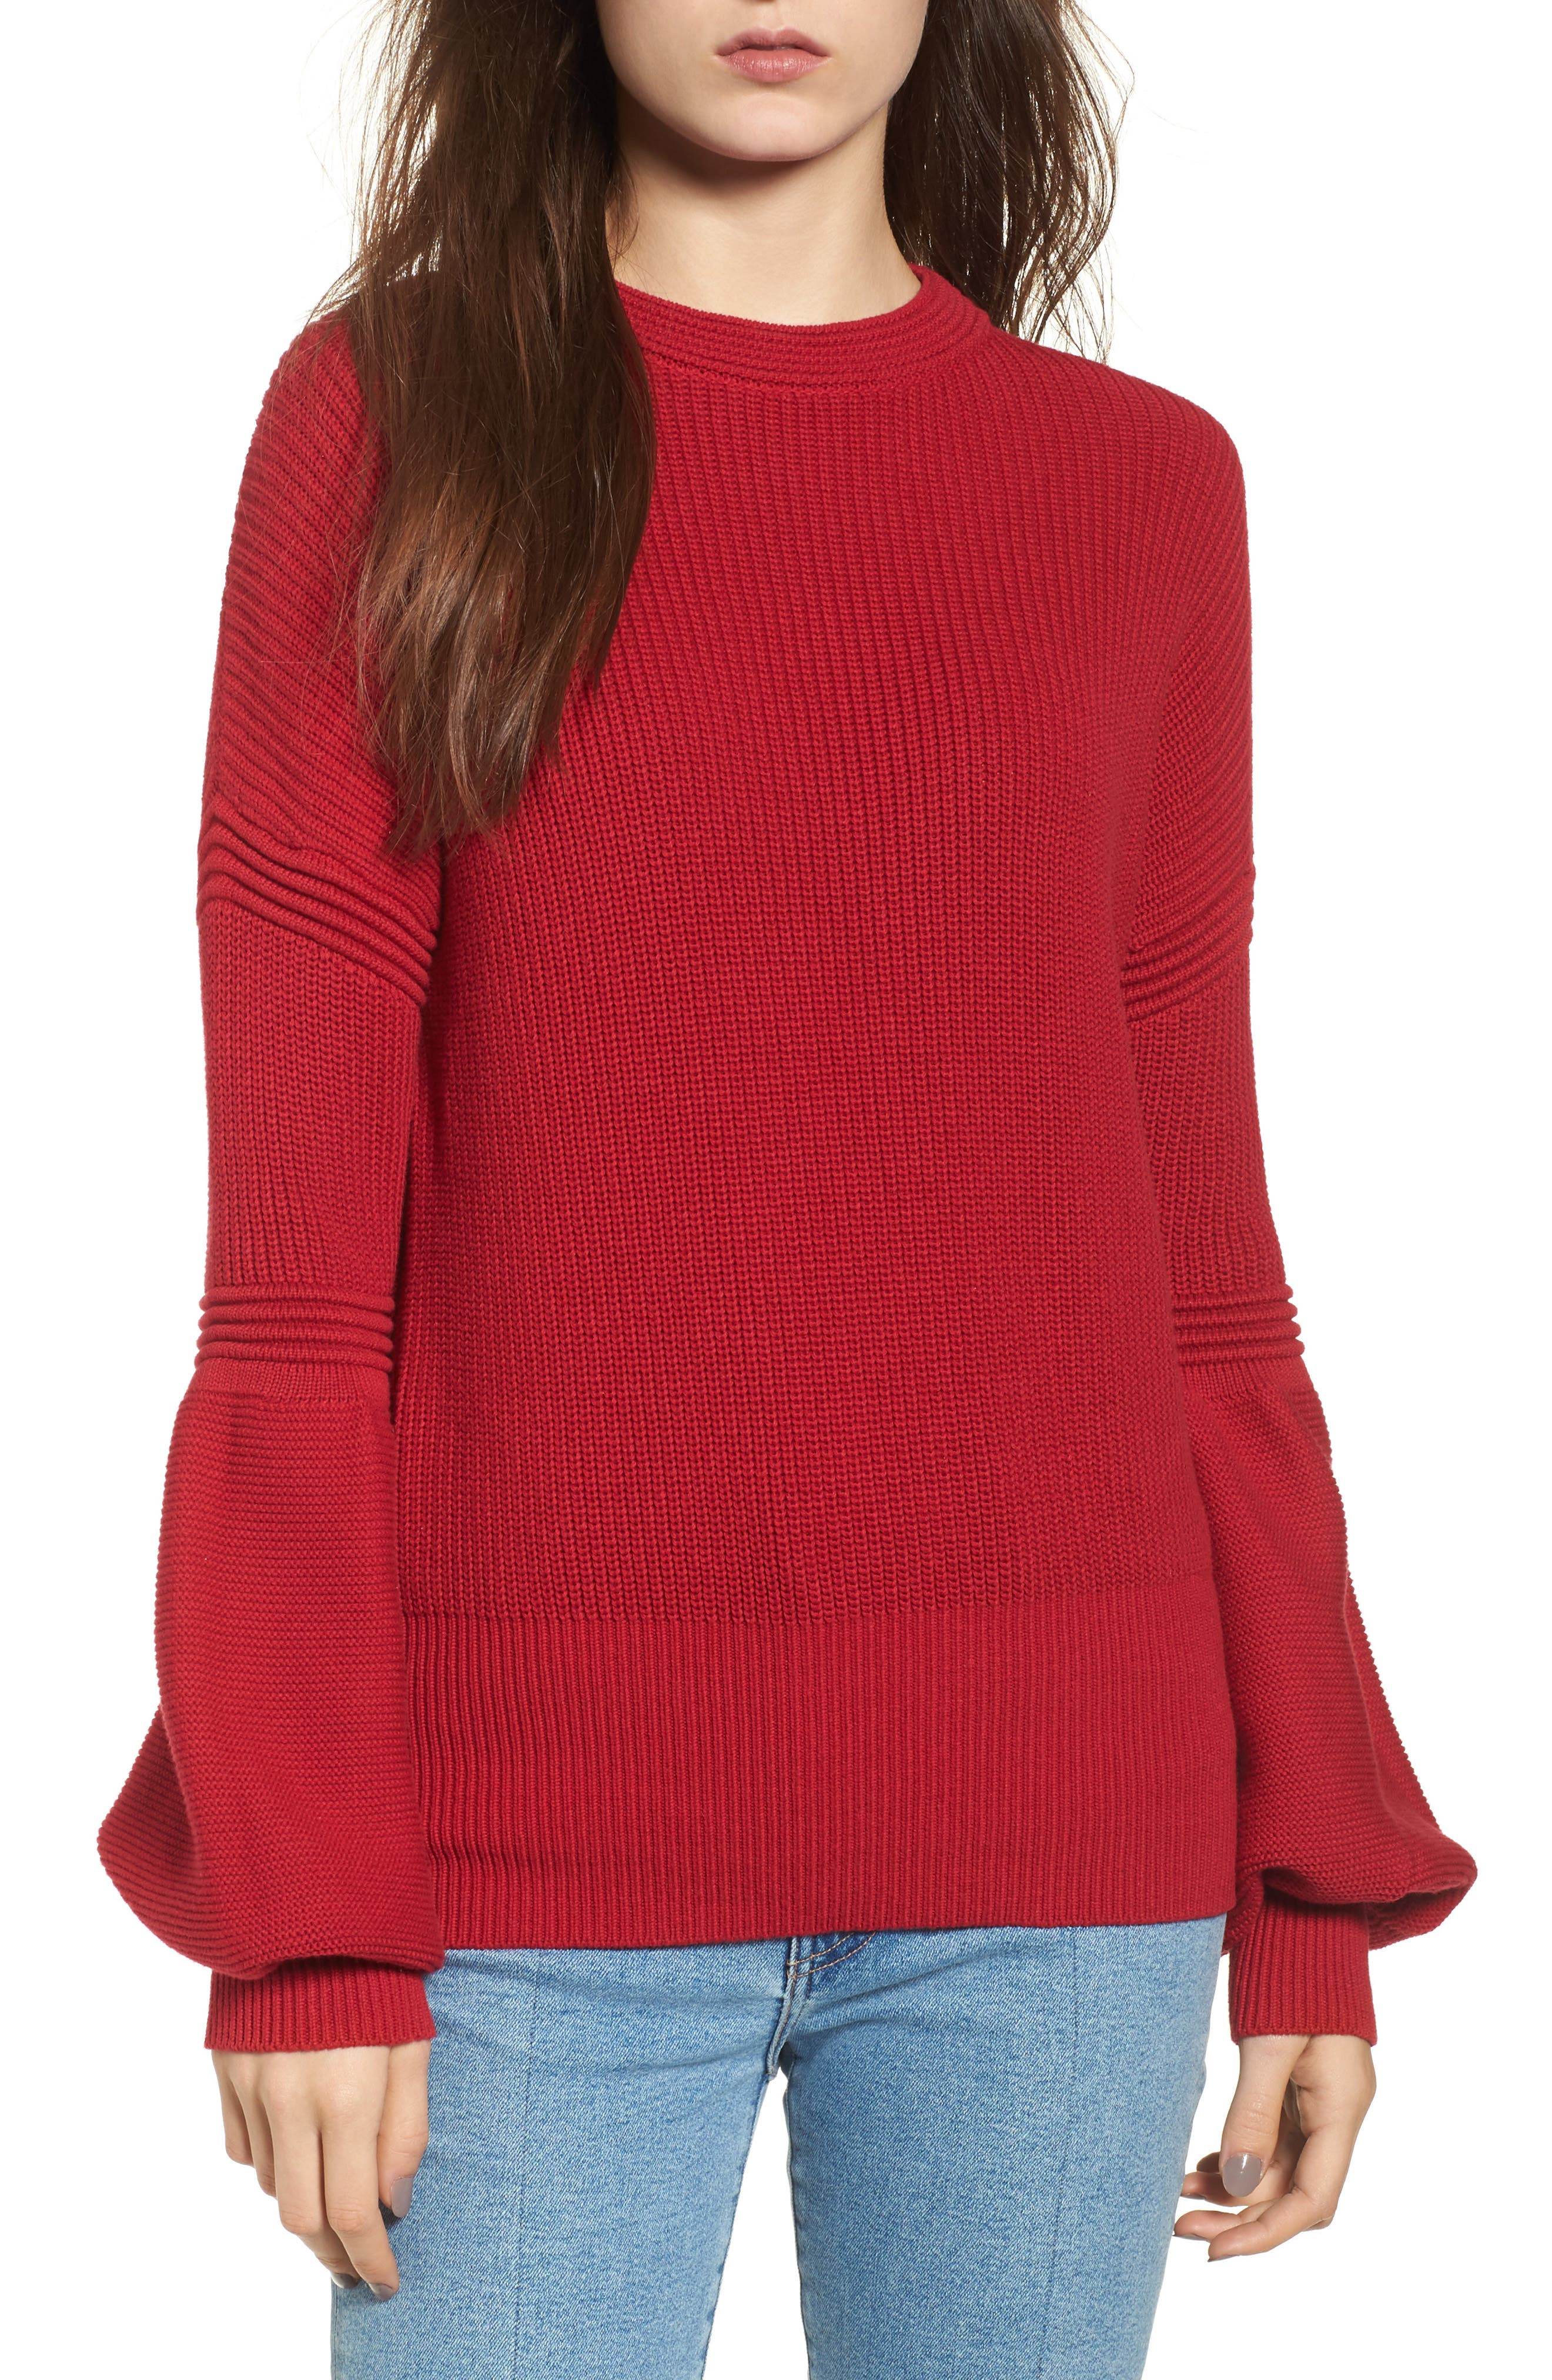 Alternate Image 1 Selected - The Fifth Label Sculpture Puff Sleeve Sweater